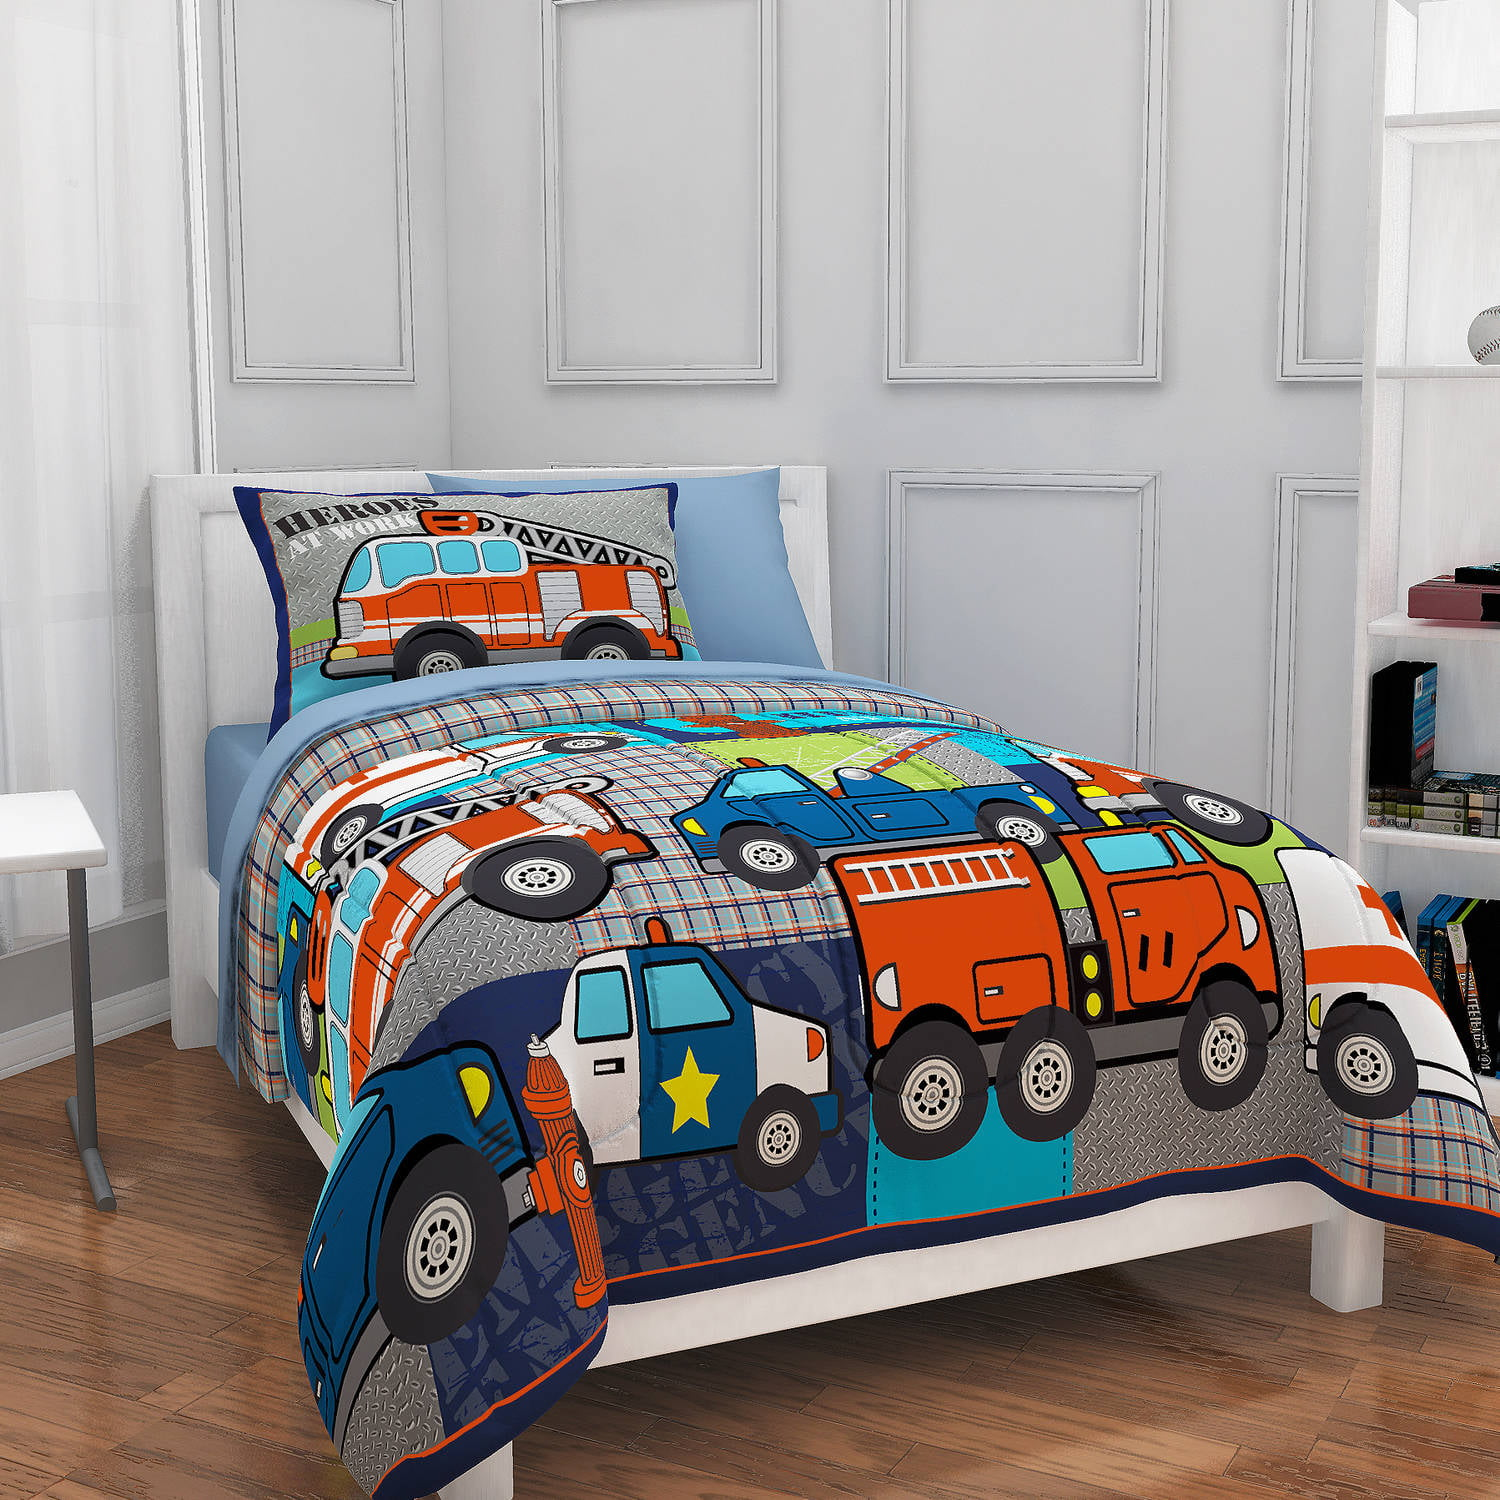 Mainstays Kids Heroes at Work Bed in a Bag Bedding Set by Idea Nuova